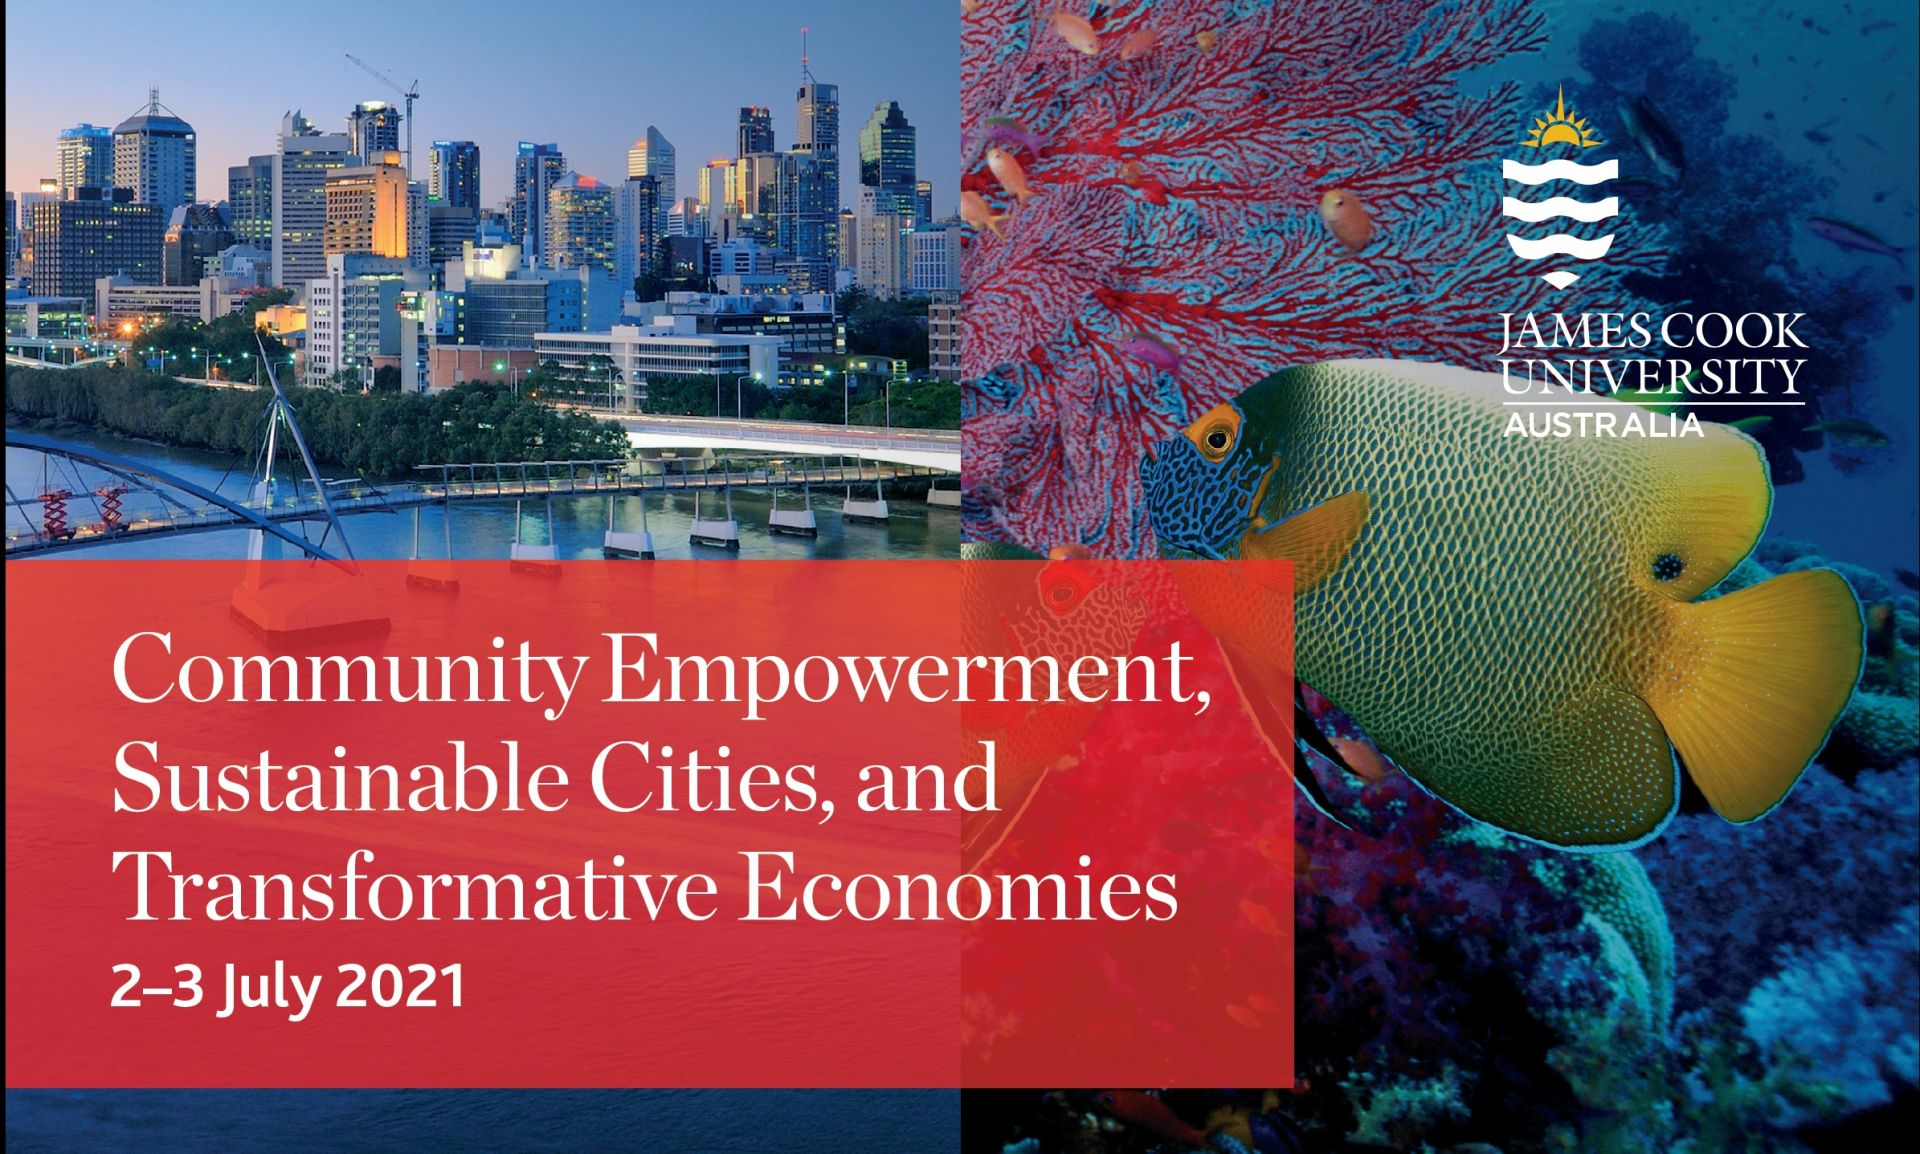 Community Empowerment, Sustainable Cities, and Transformative Economies. 2nd to 3rd July 2021. CITBA's International Conference 2021